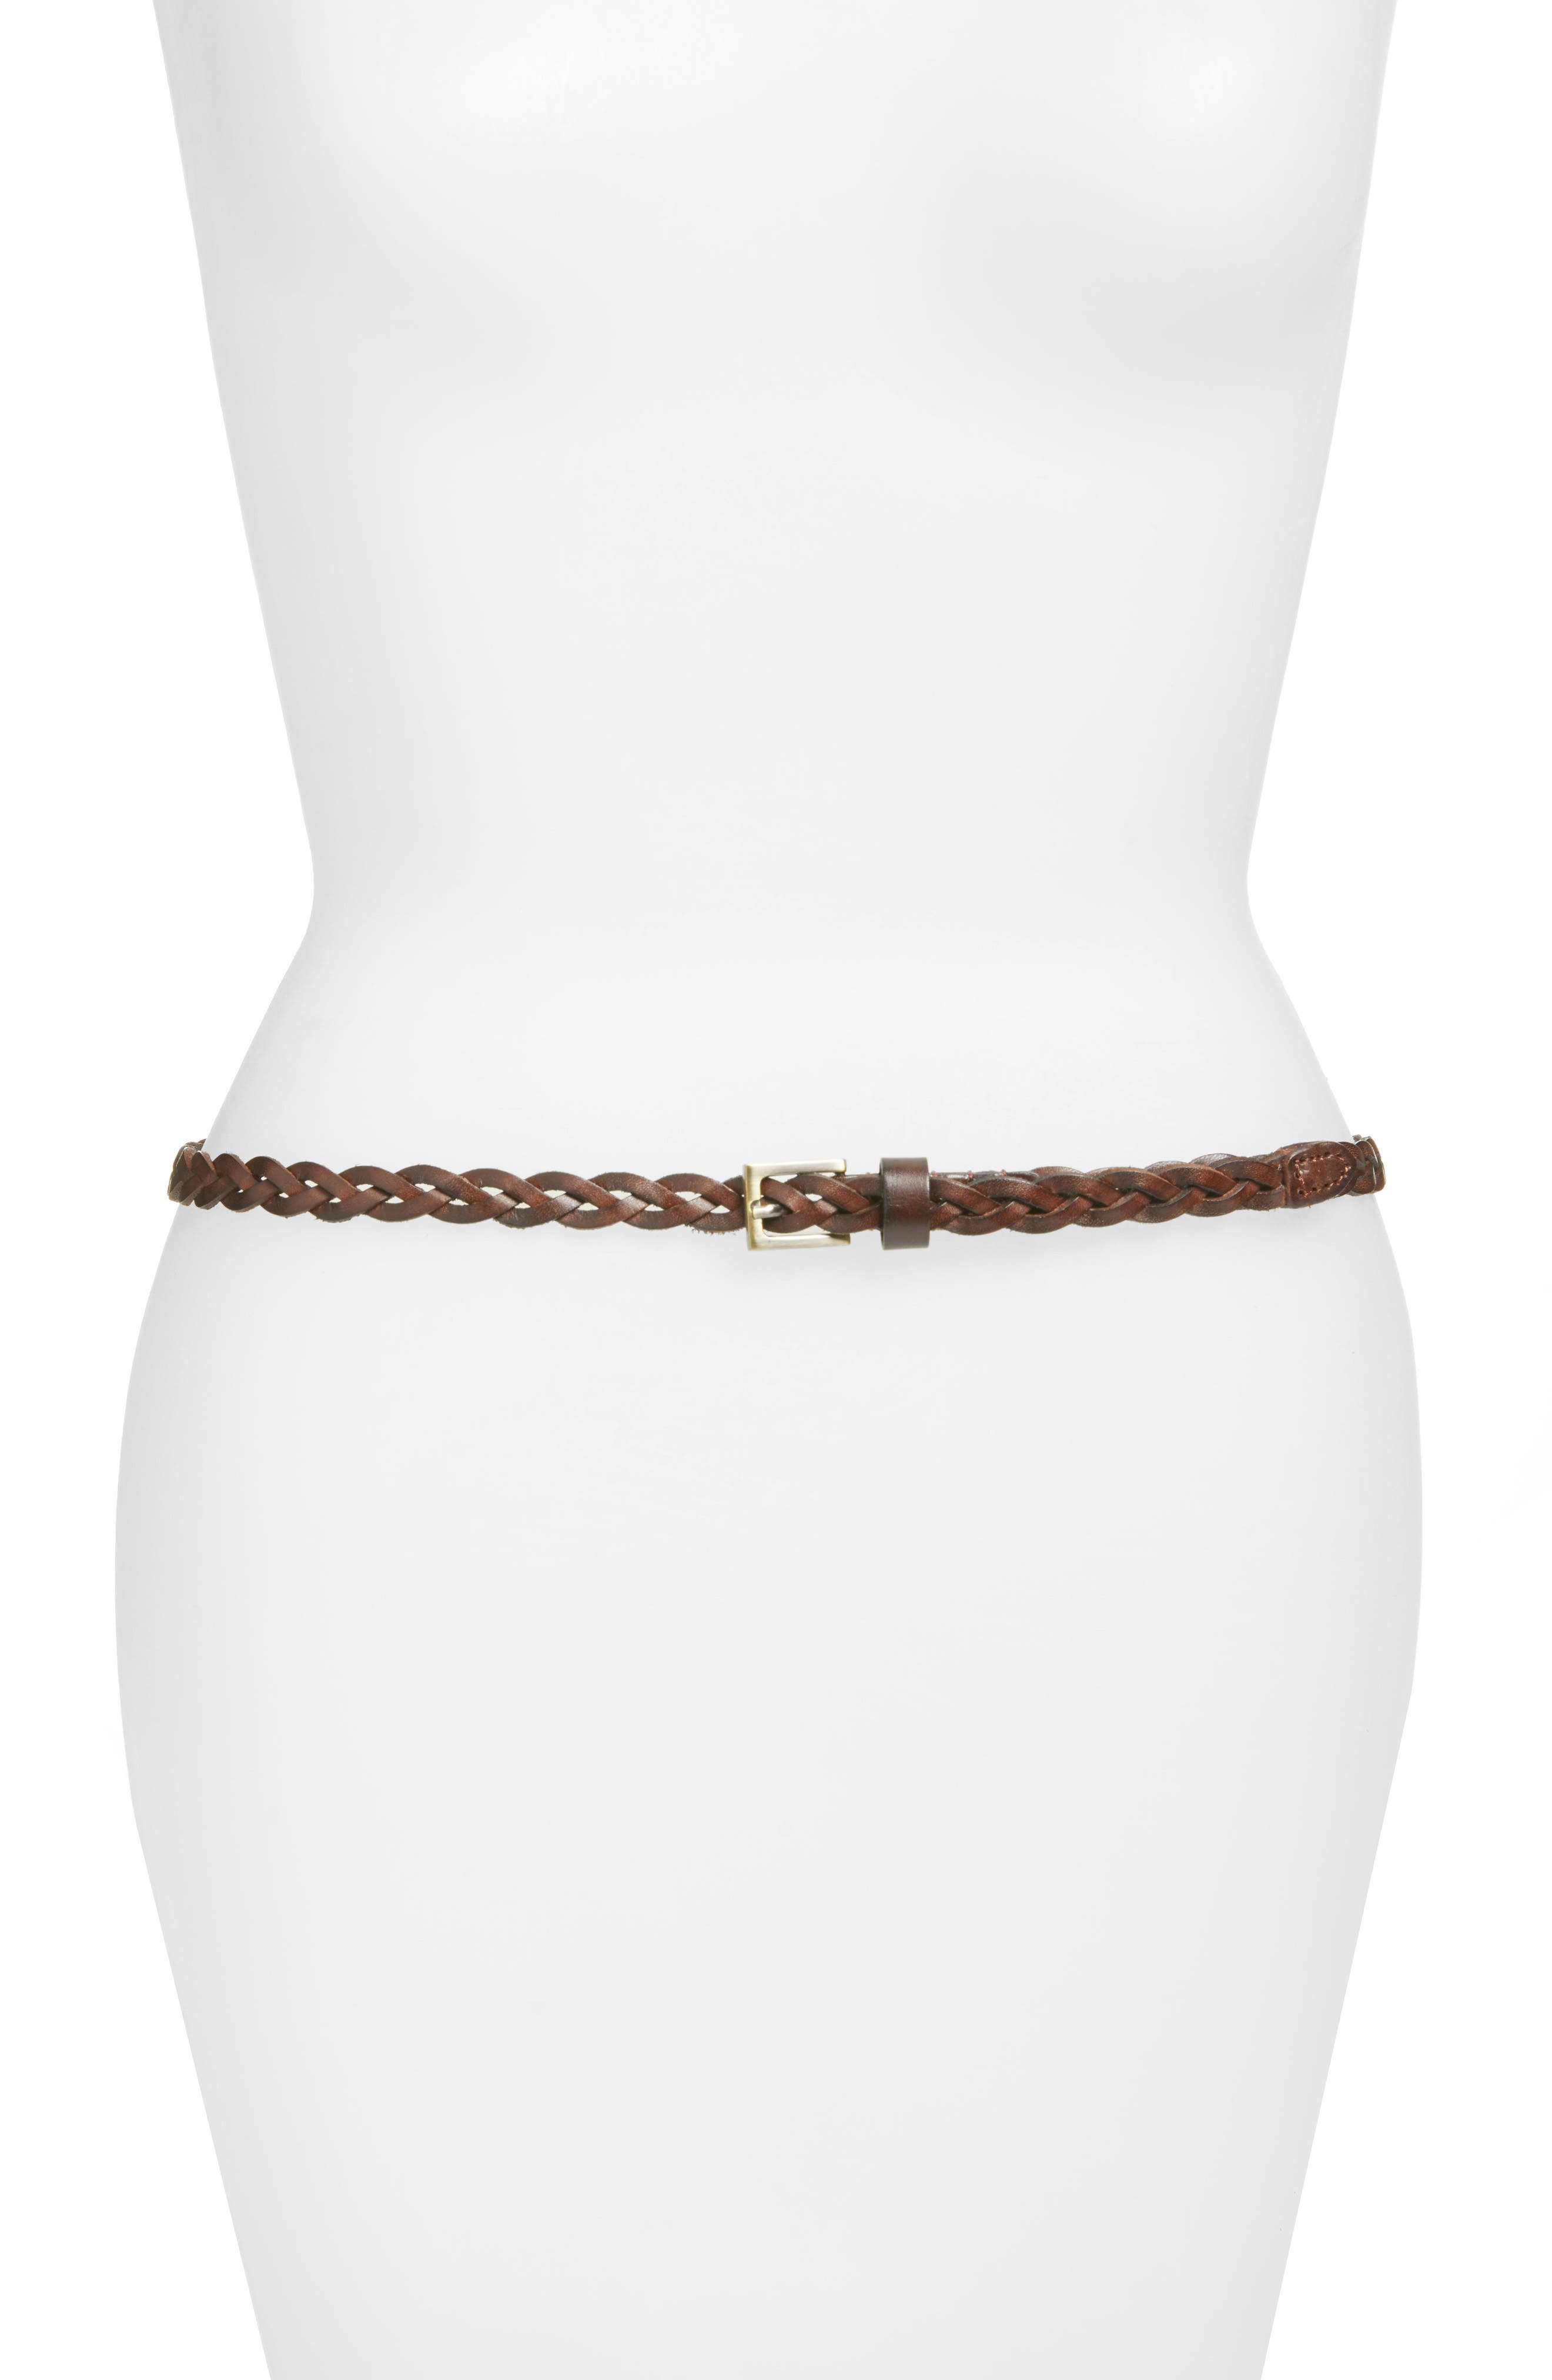 Lawrence Braided Leather Belt,                             Main thumbnail 1, color,                             201